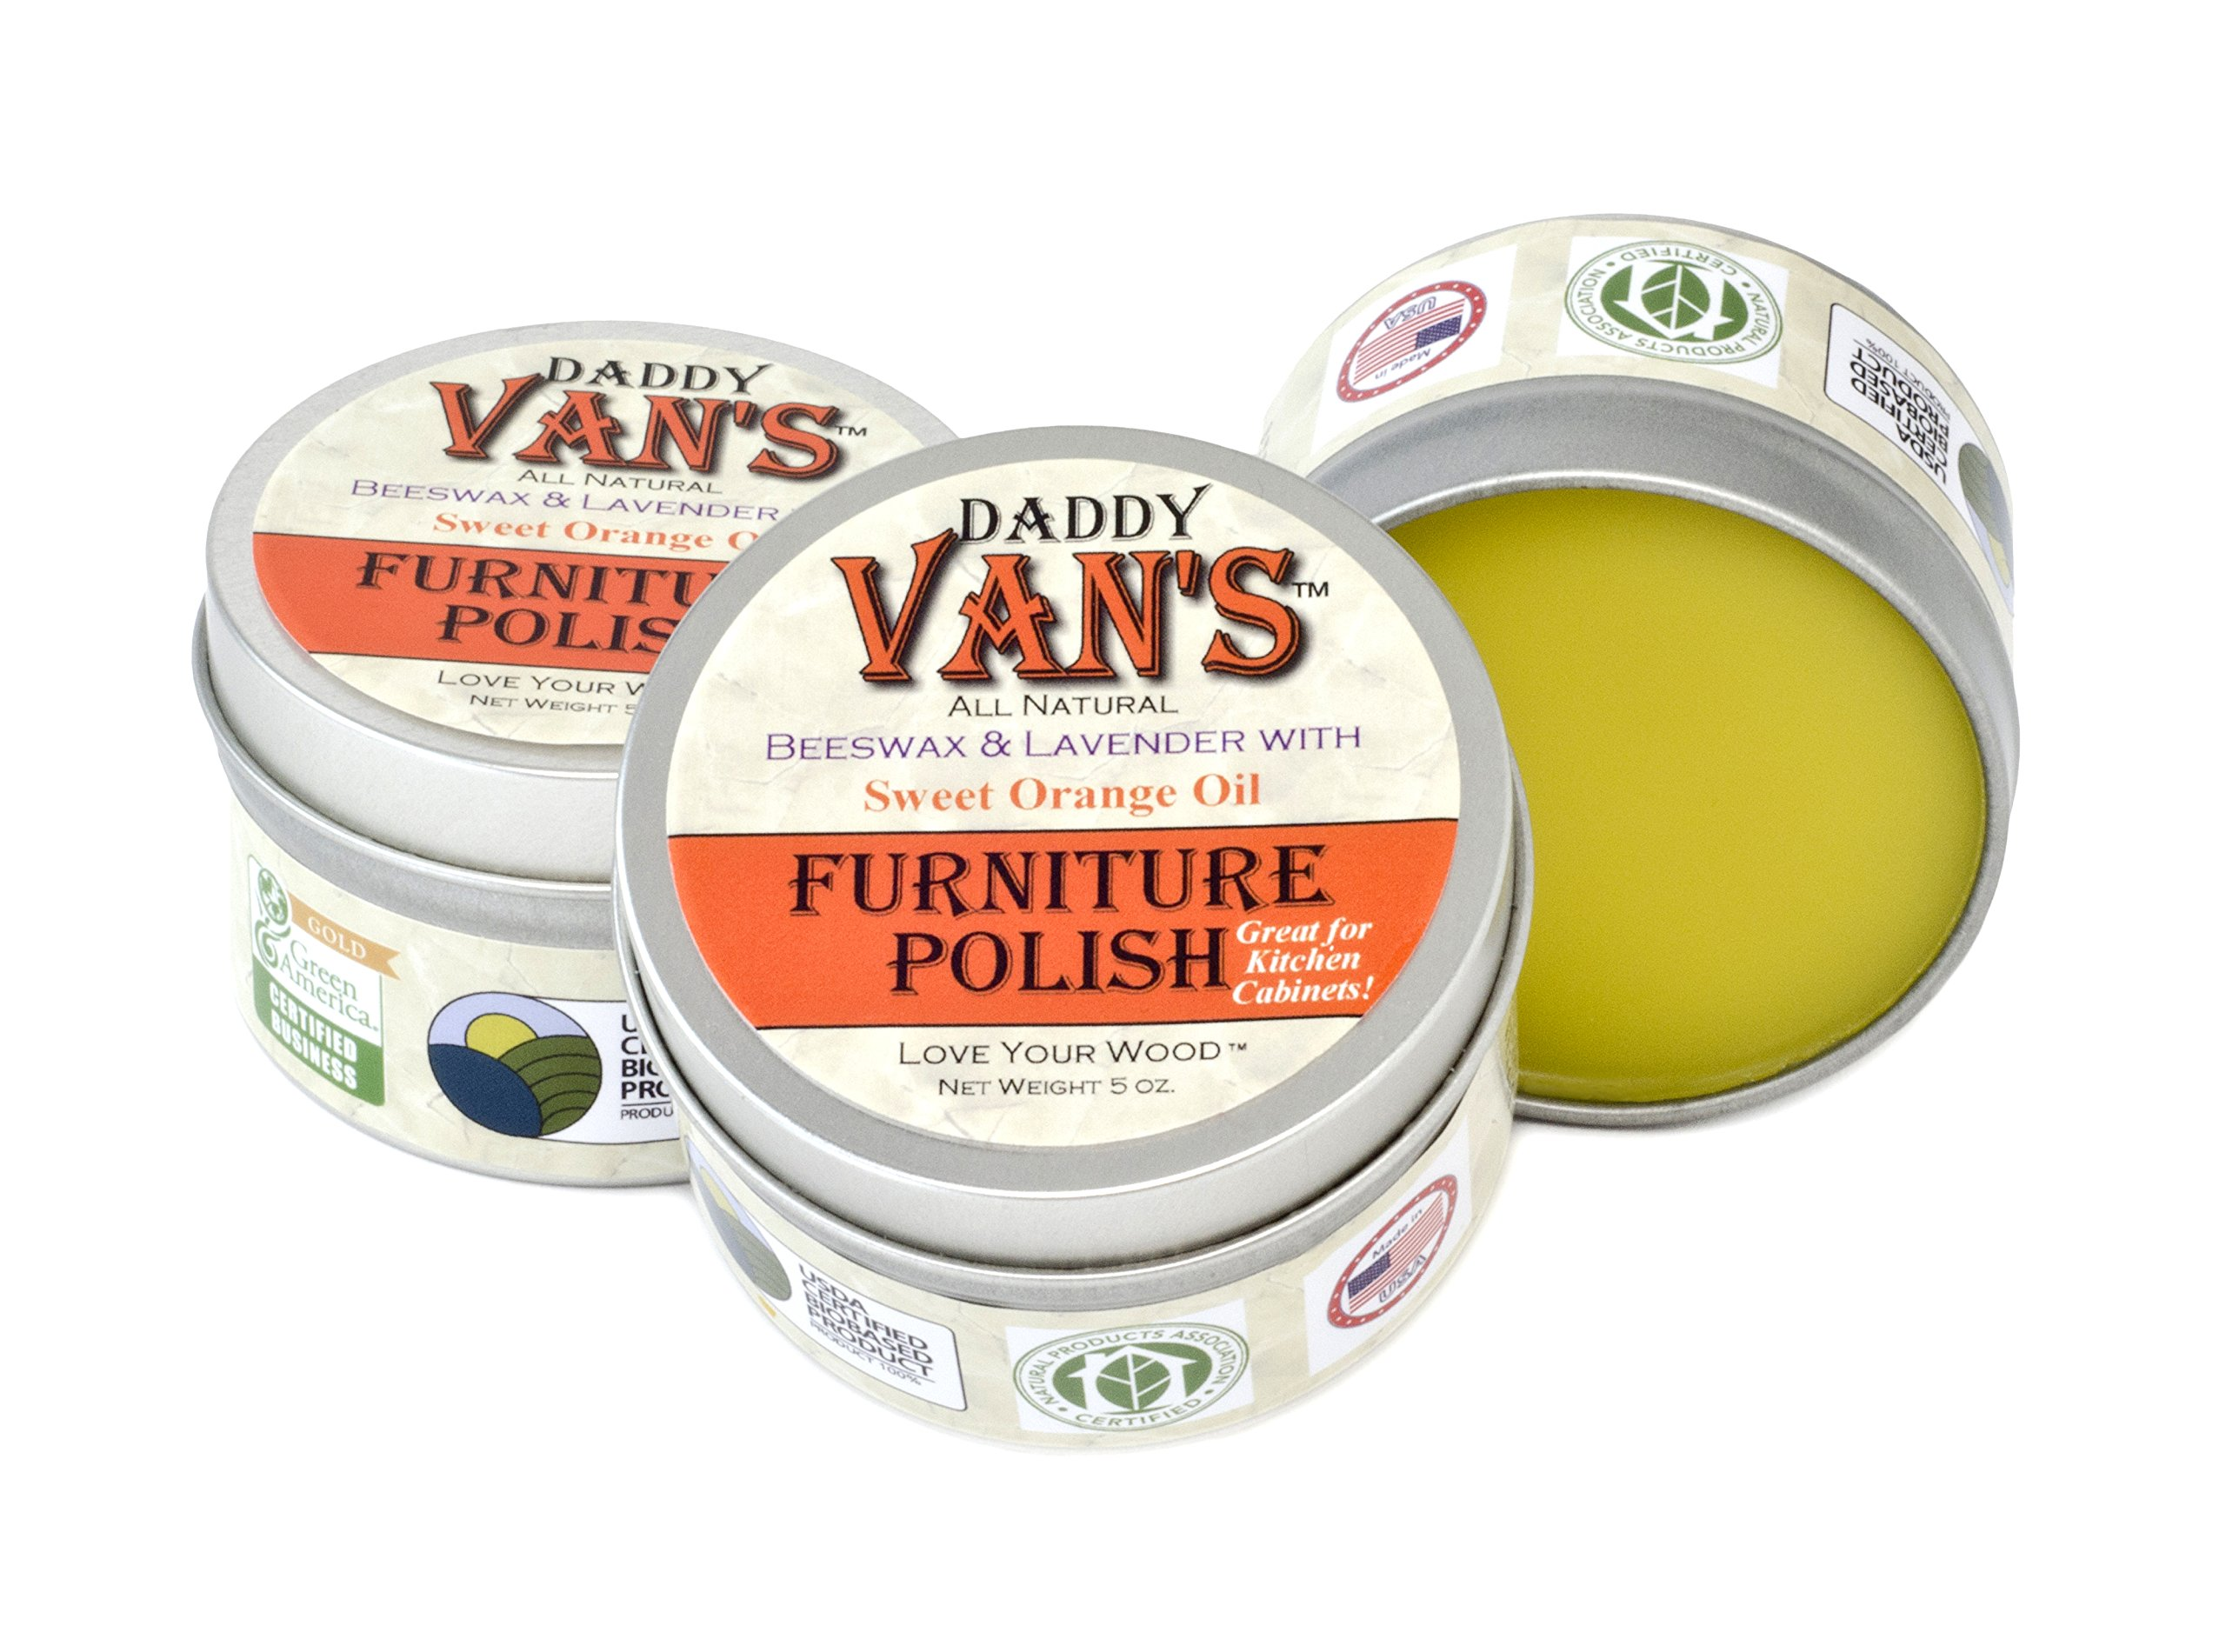 Daddy Van's All Natural Lavender & Sweet Orange Oil Beeswax Furniture Polish Chemical-free Wood Conditioner and Protectant. No Petroleum Distillates.